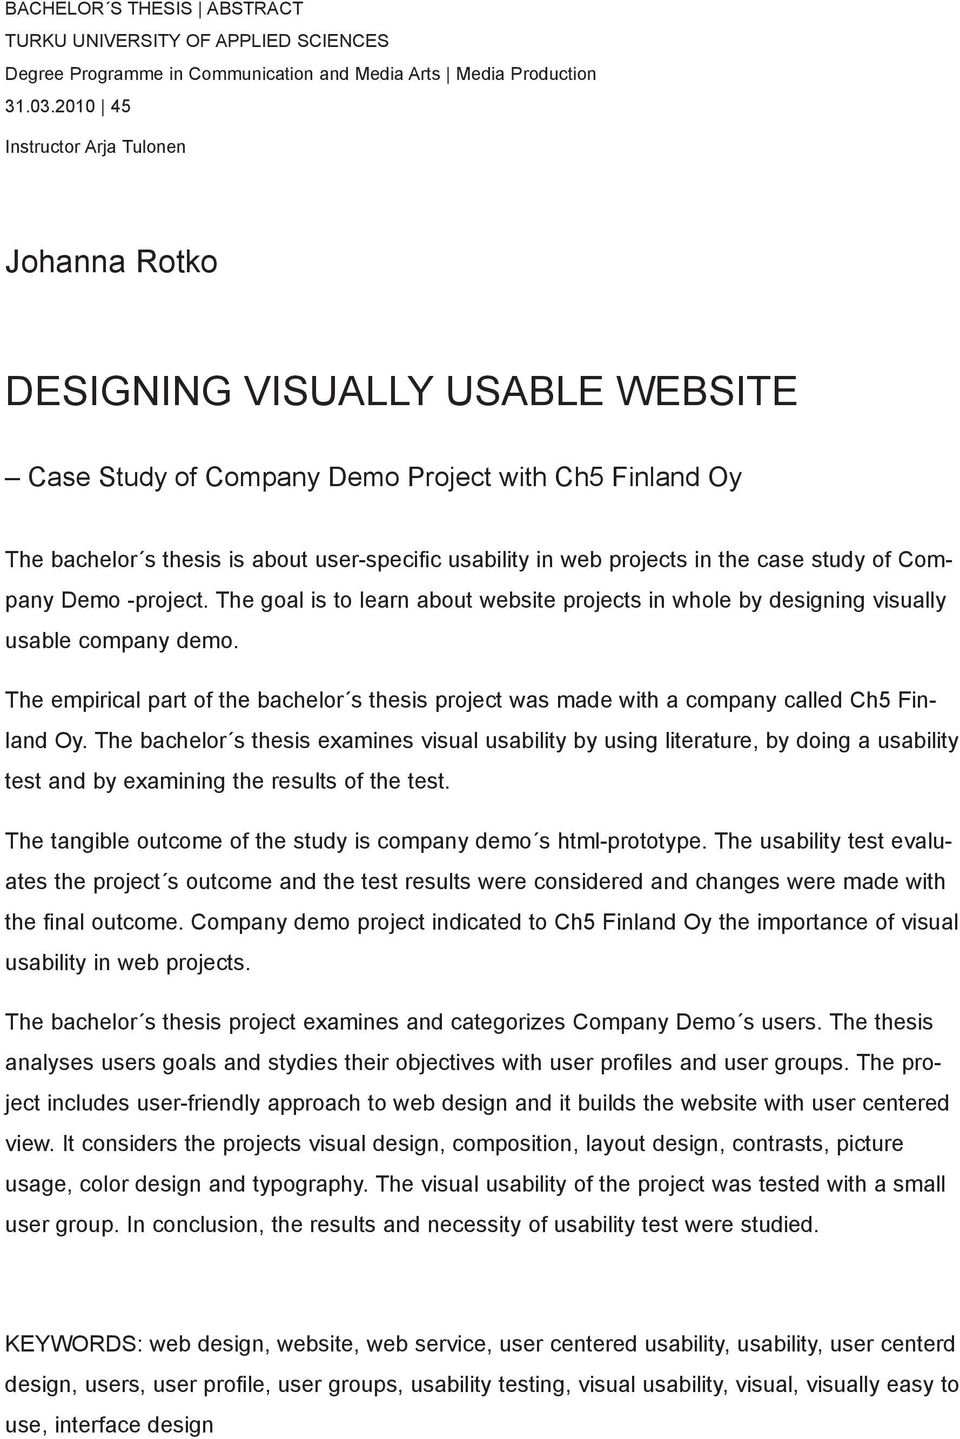 projects in the case study of Company Demo -project. The goal is to learn about website projects in whole by designing visually usable company demo.